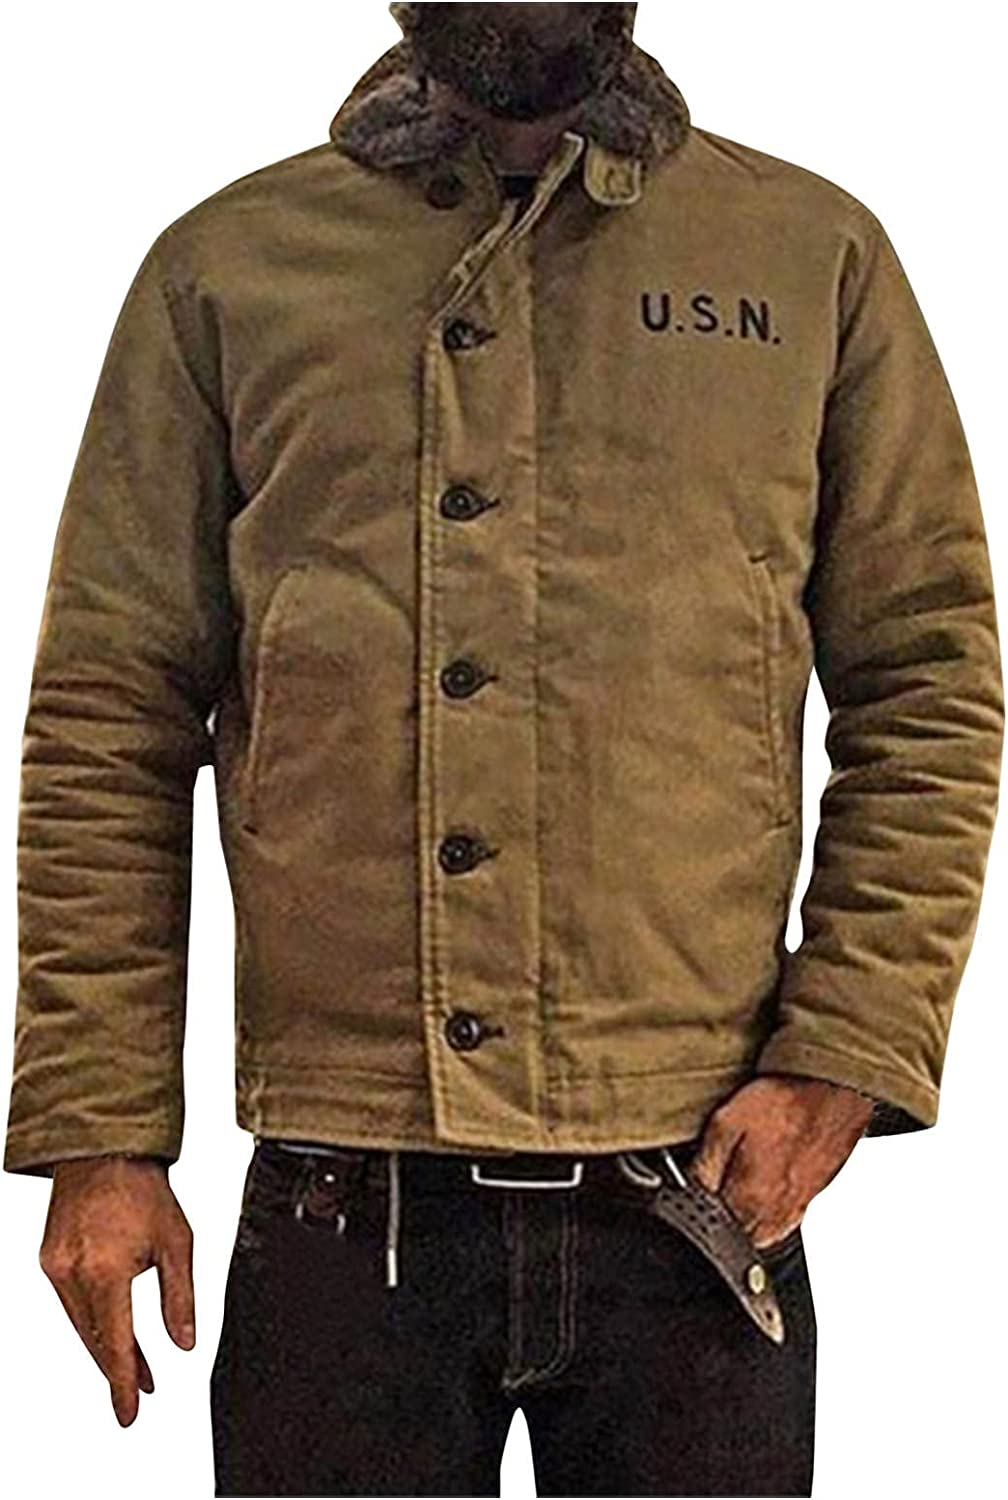 Men's Winter Thick Coat Casual Hipster Outwear Tops Lightweight Big & Tall Single Breasted Jacket with Pocket